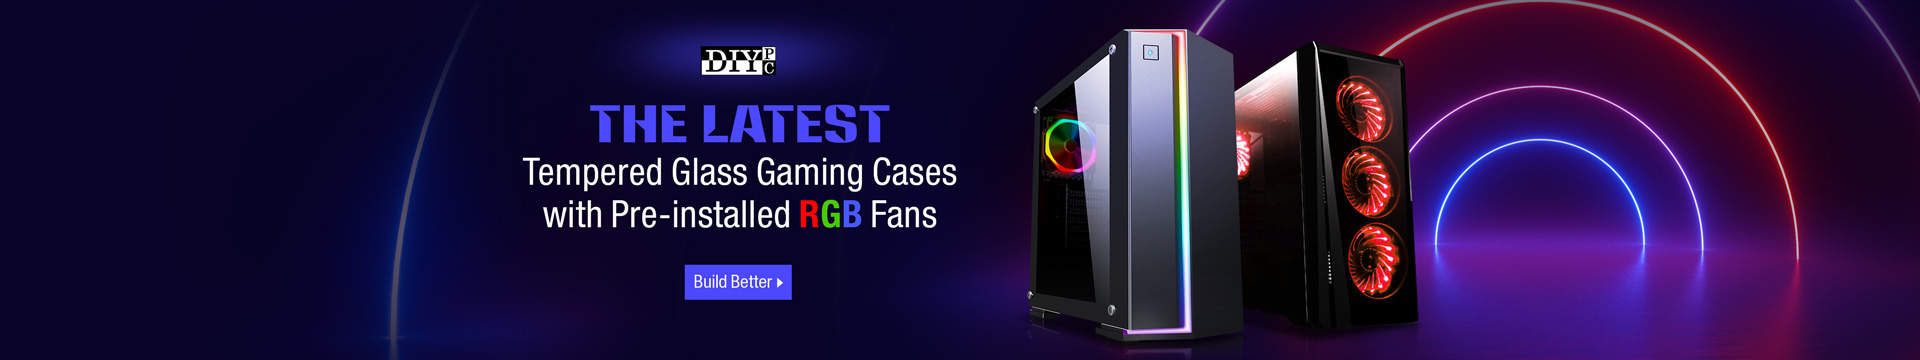 DIYPC Latest Temp Glass Gaming Cases